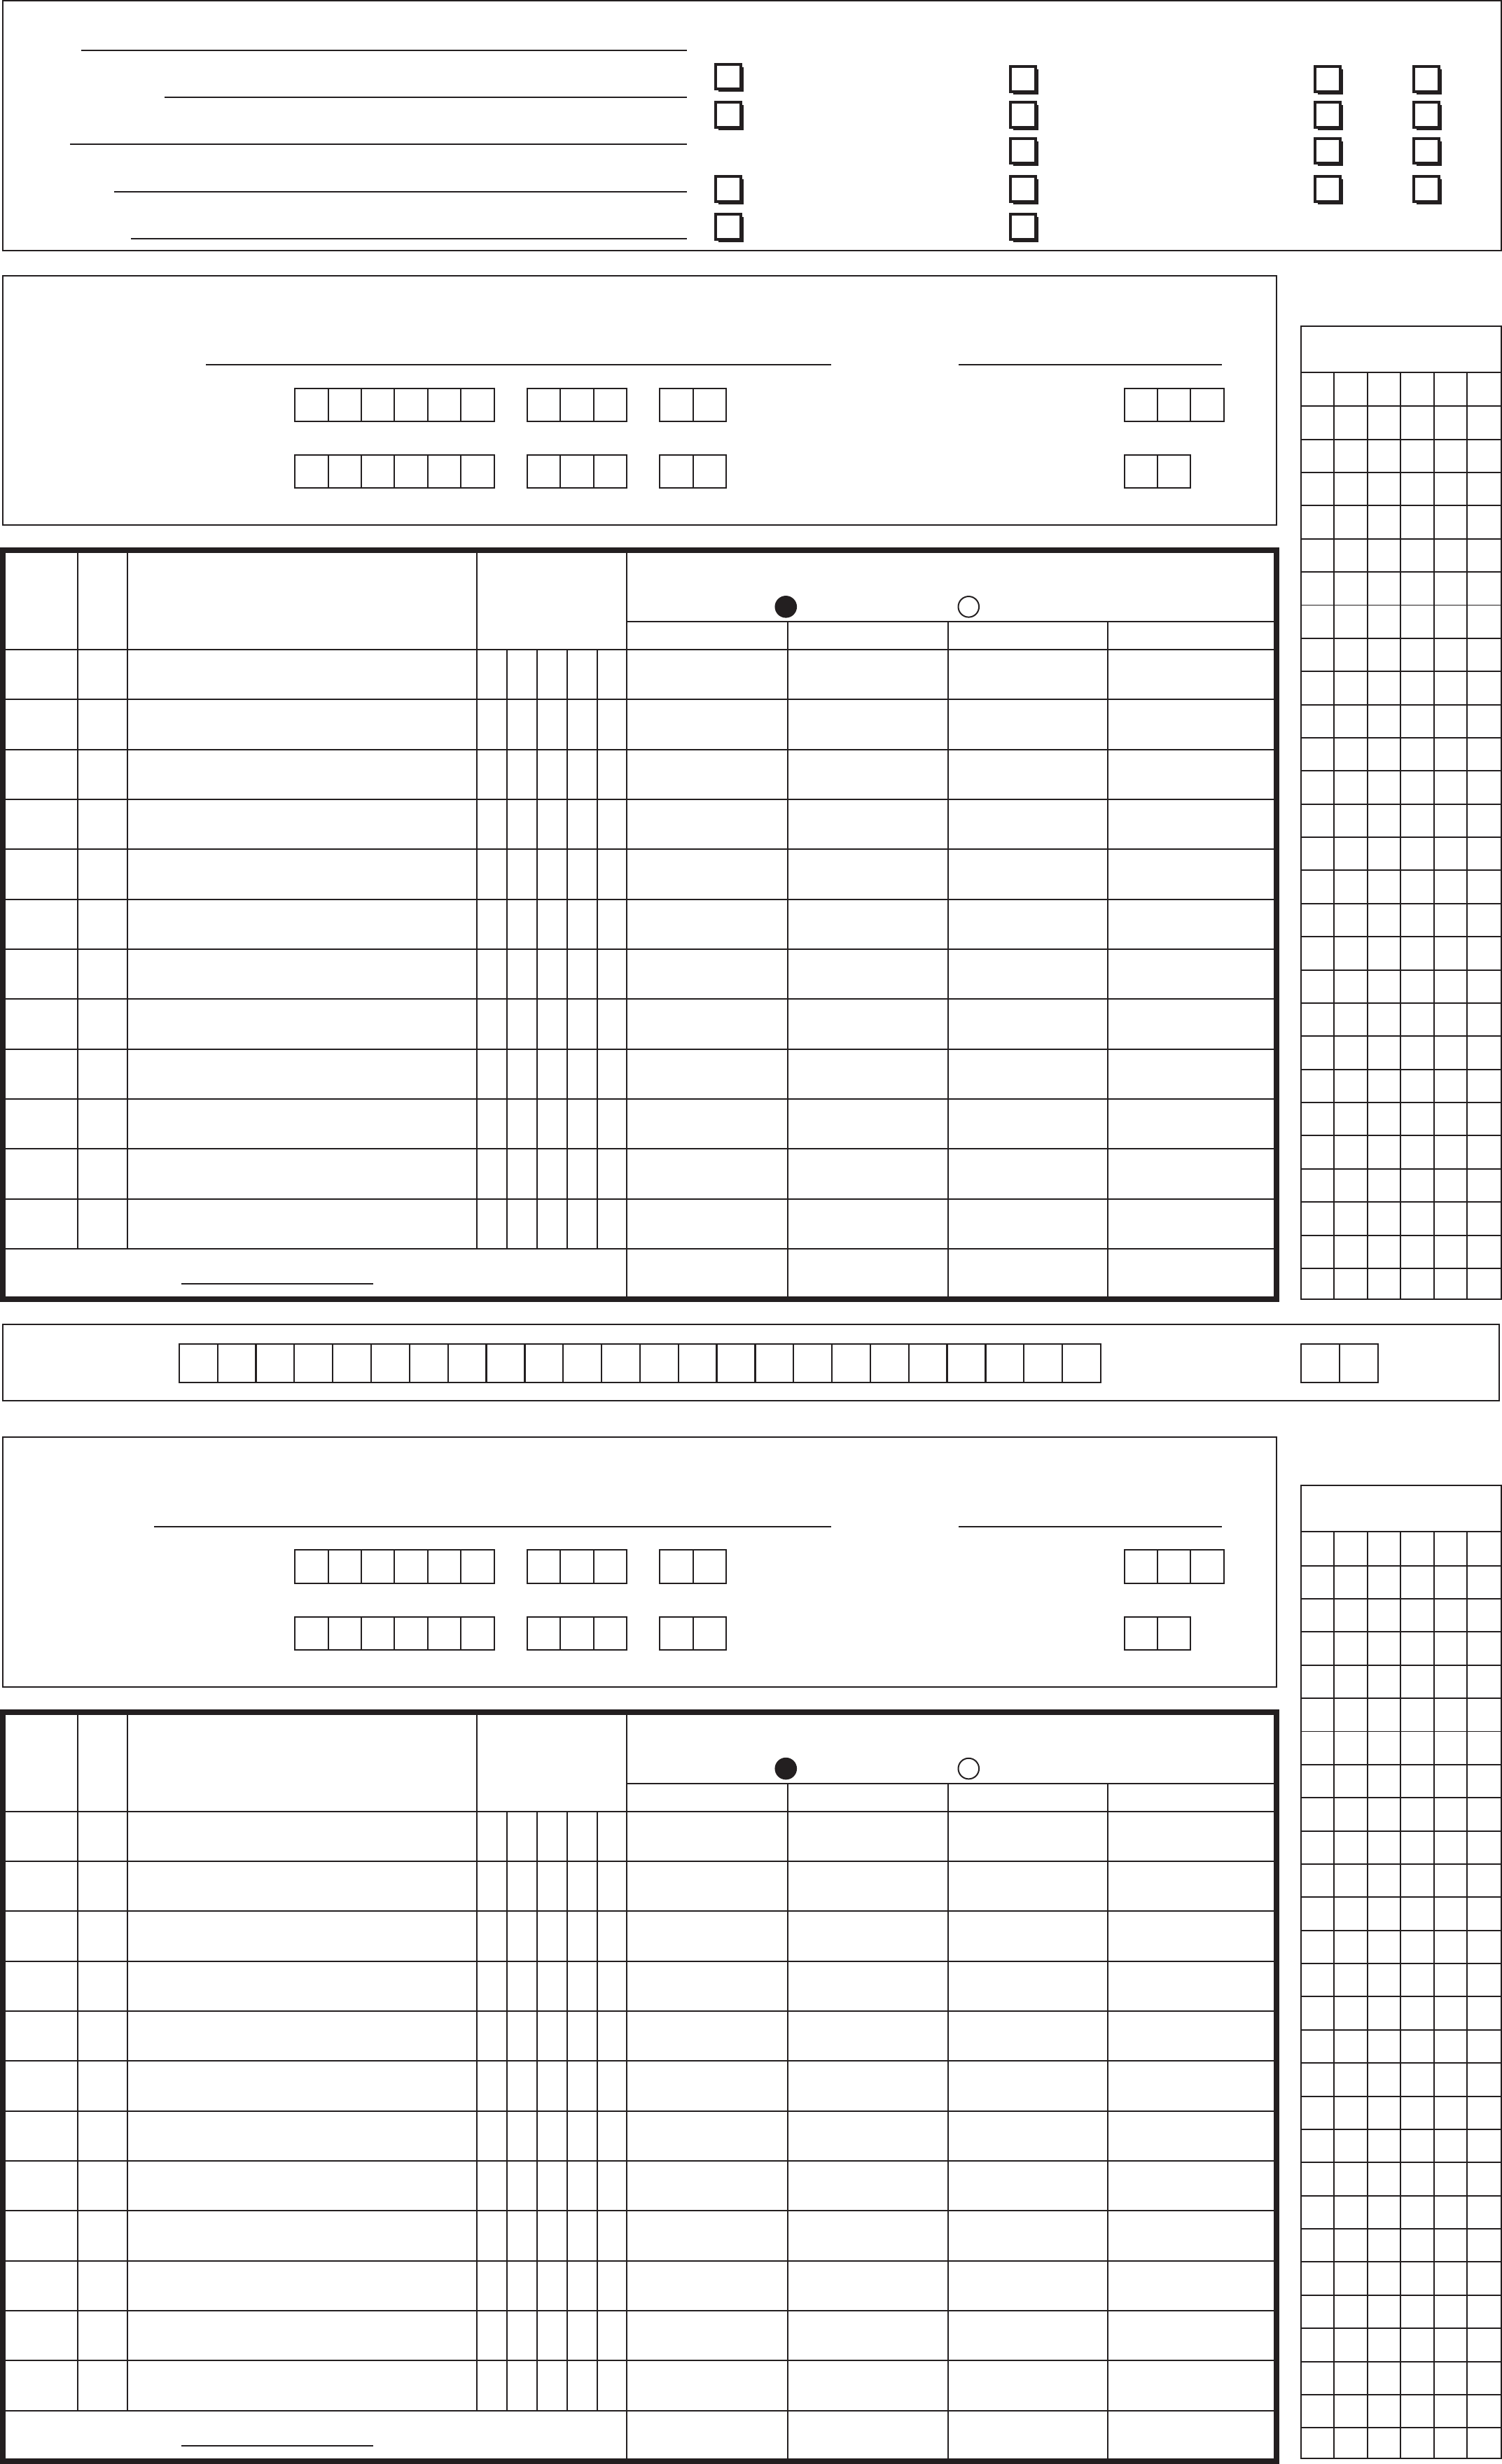 Basketball Score Sheet Sample Free Download